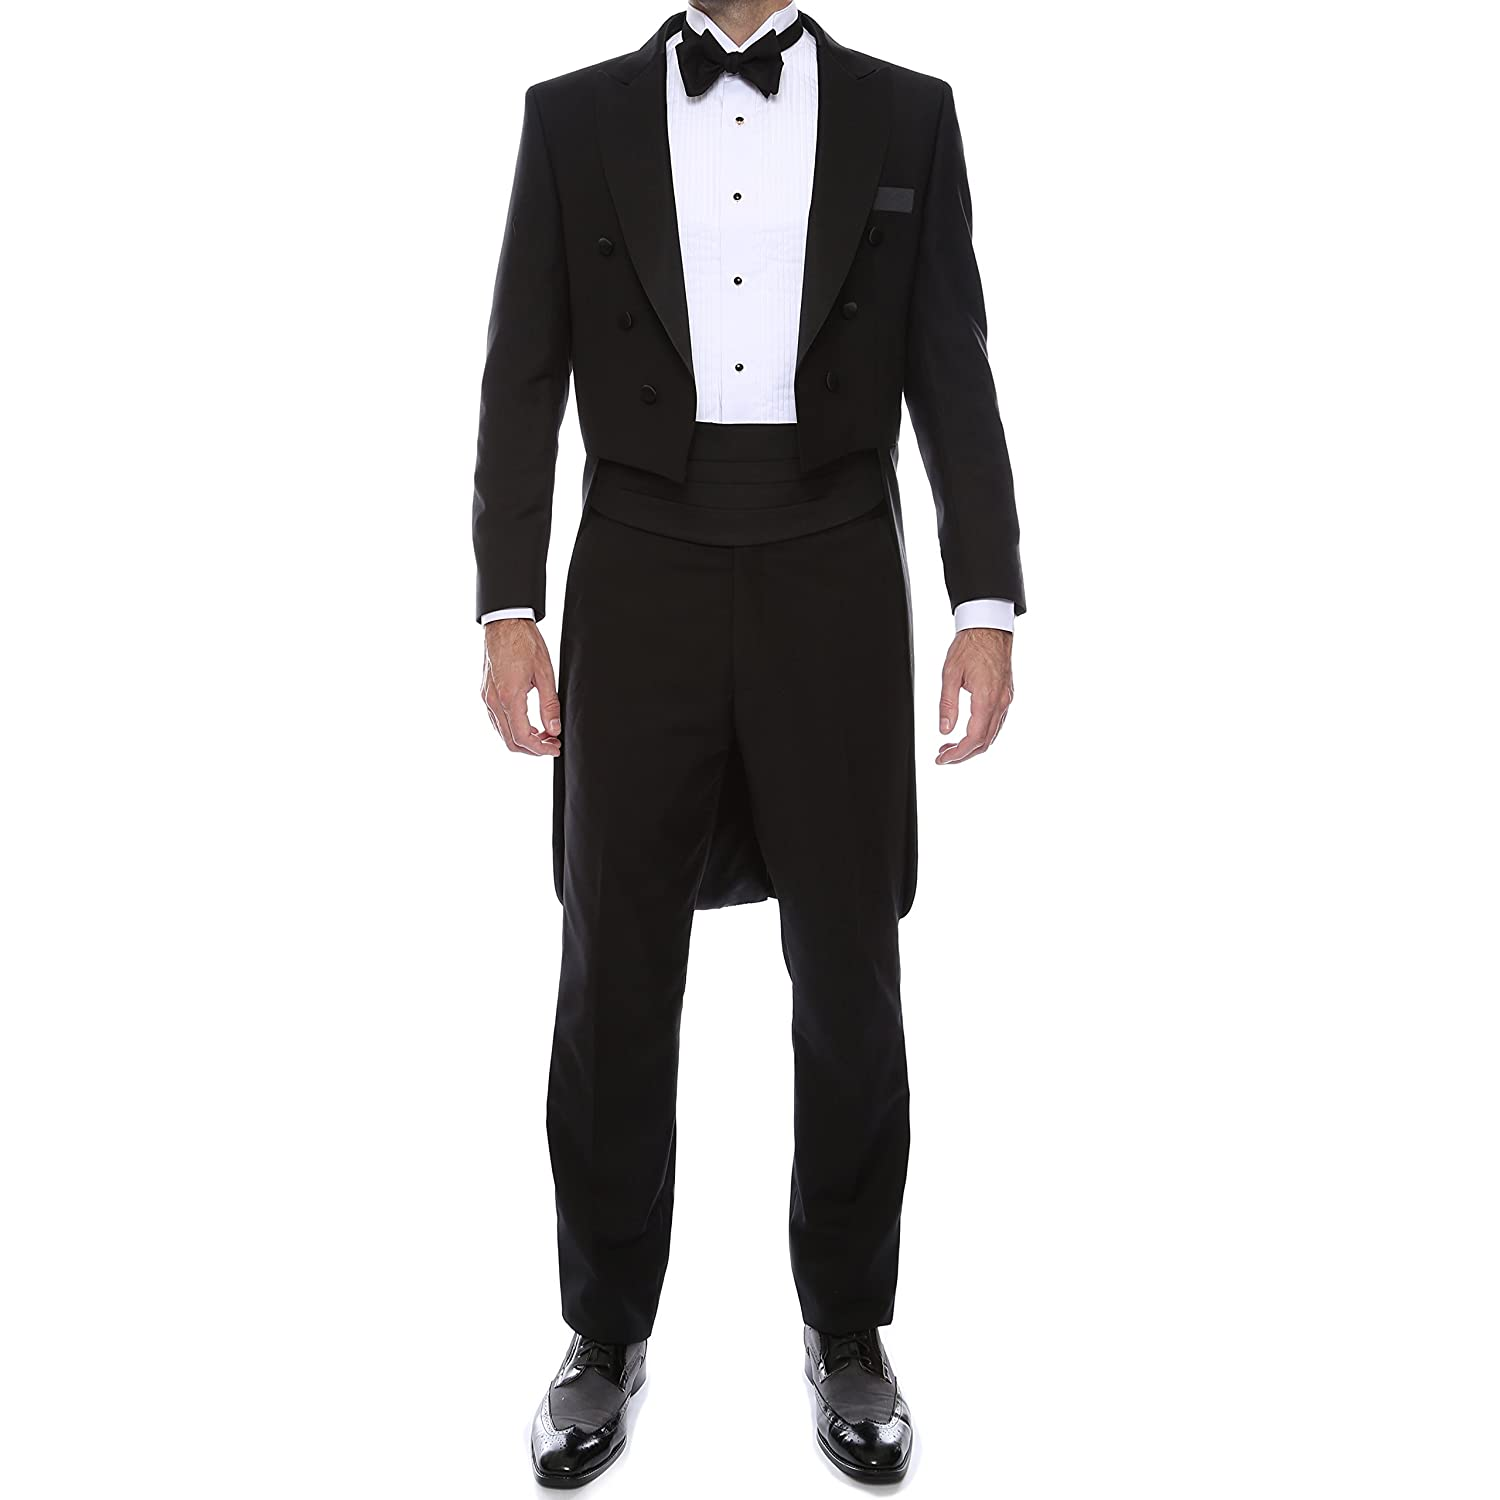 1920s Mens Evening Wear: Tuxedos and Dinner Jackets Ferrecci Premium Mens 2pc Victorian Tail Tuxedo - Tailcoat & Slacks $109.75 AT vintagedancer.com